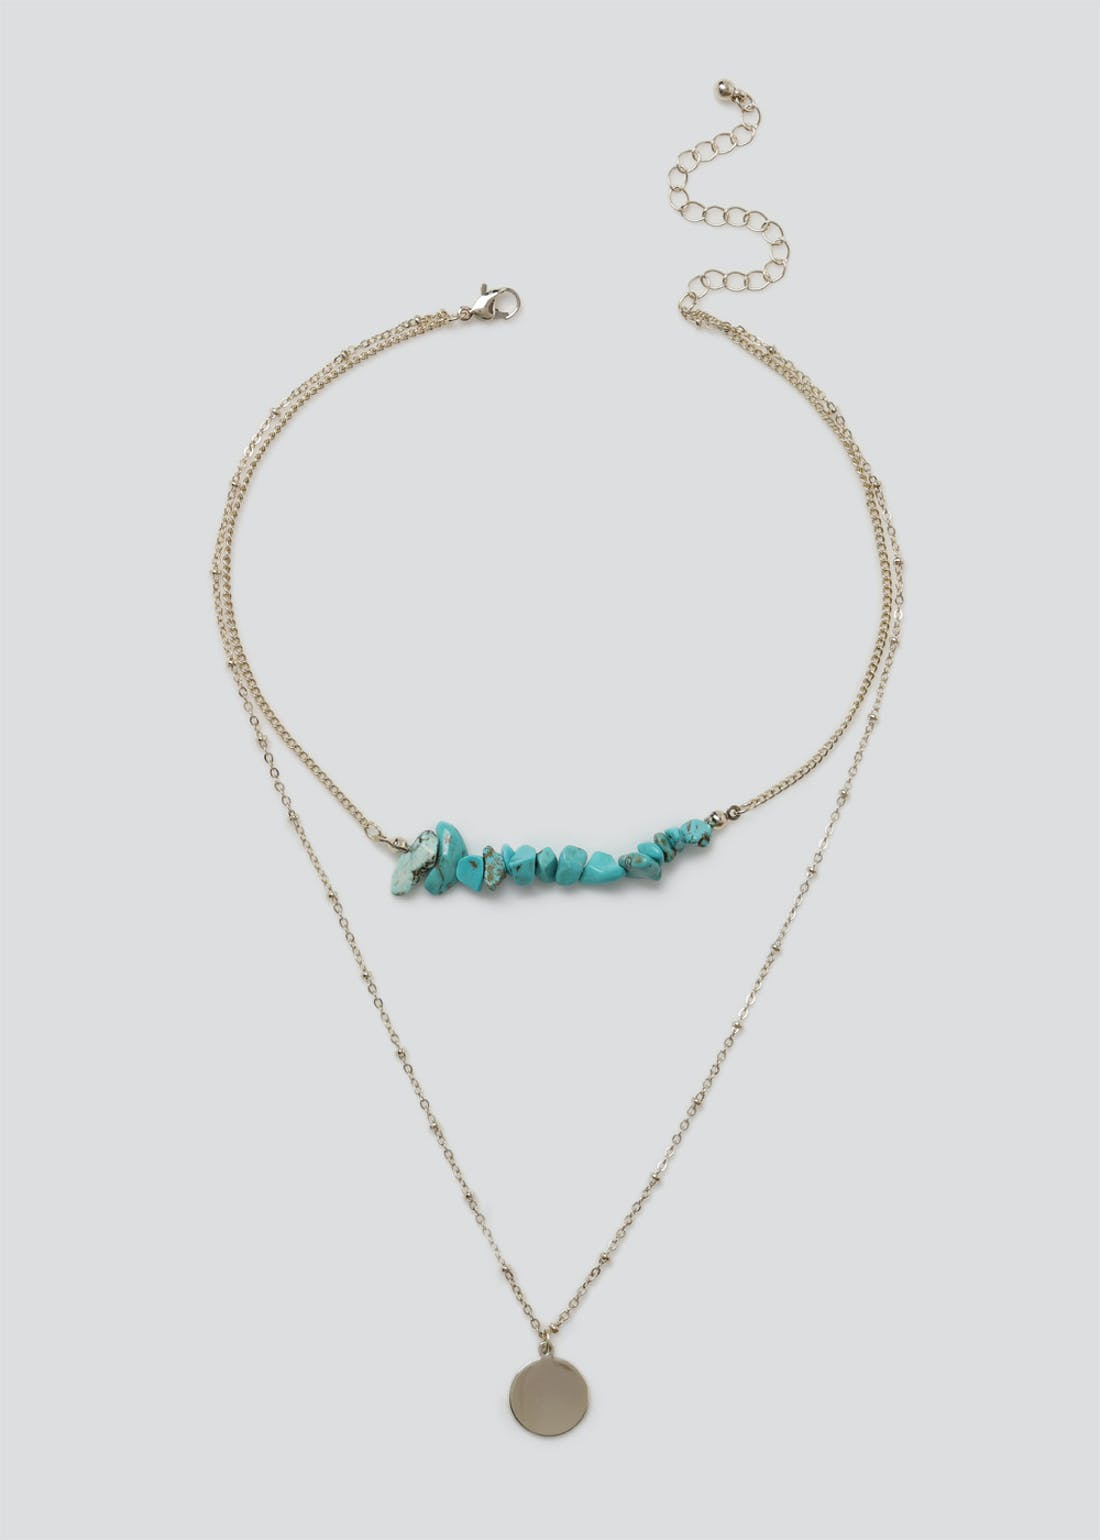 Chippings Layered Choker Necklace